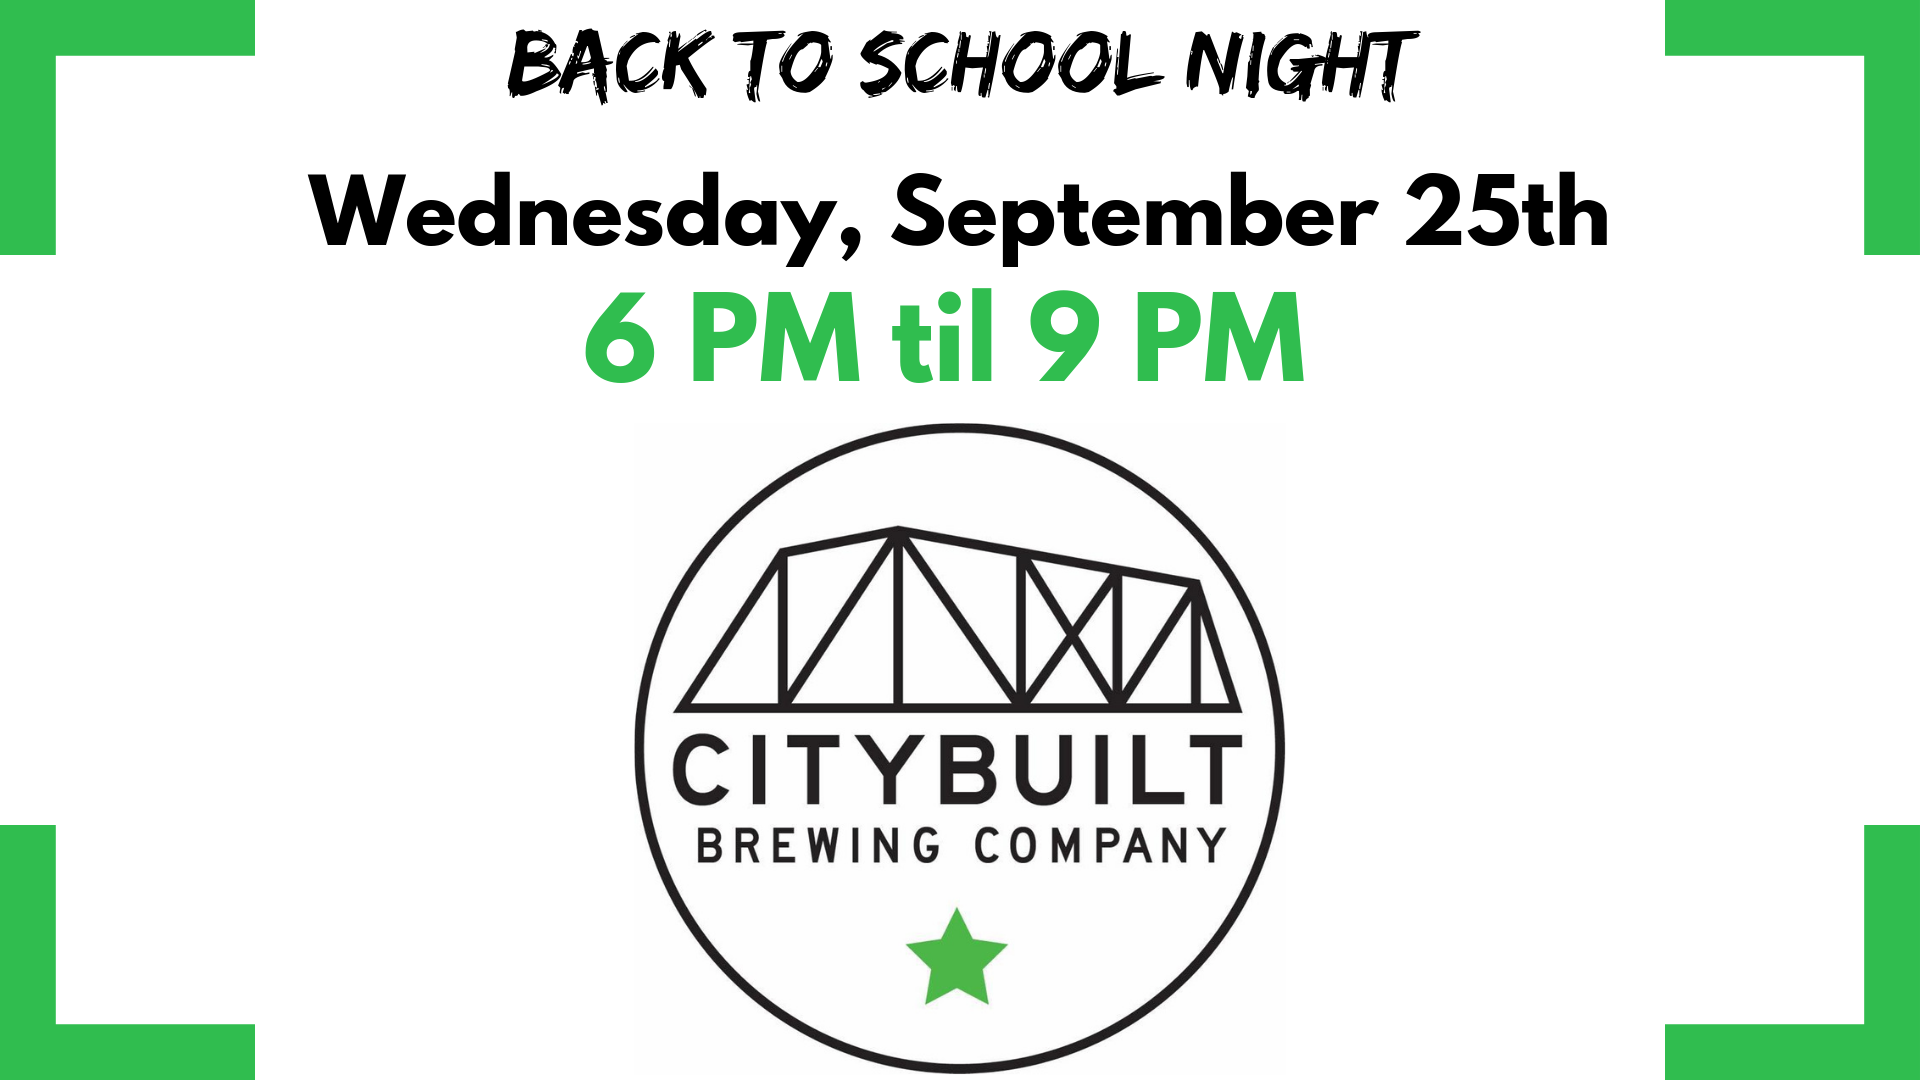 CITY BUILT BREWING COMPANY BACK TO SCHOOL NIGHT